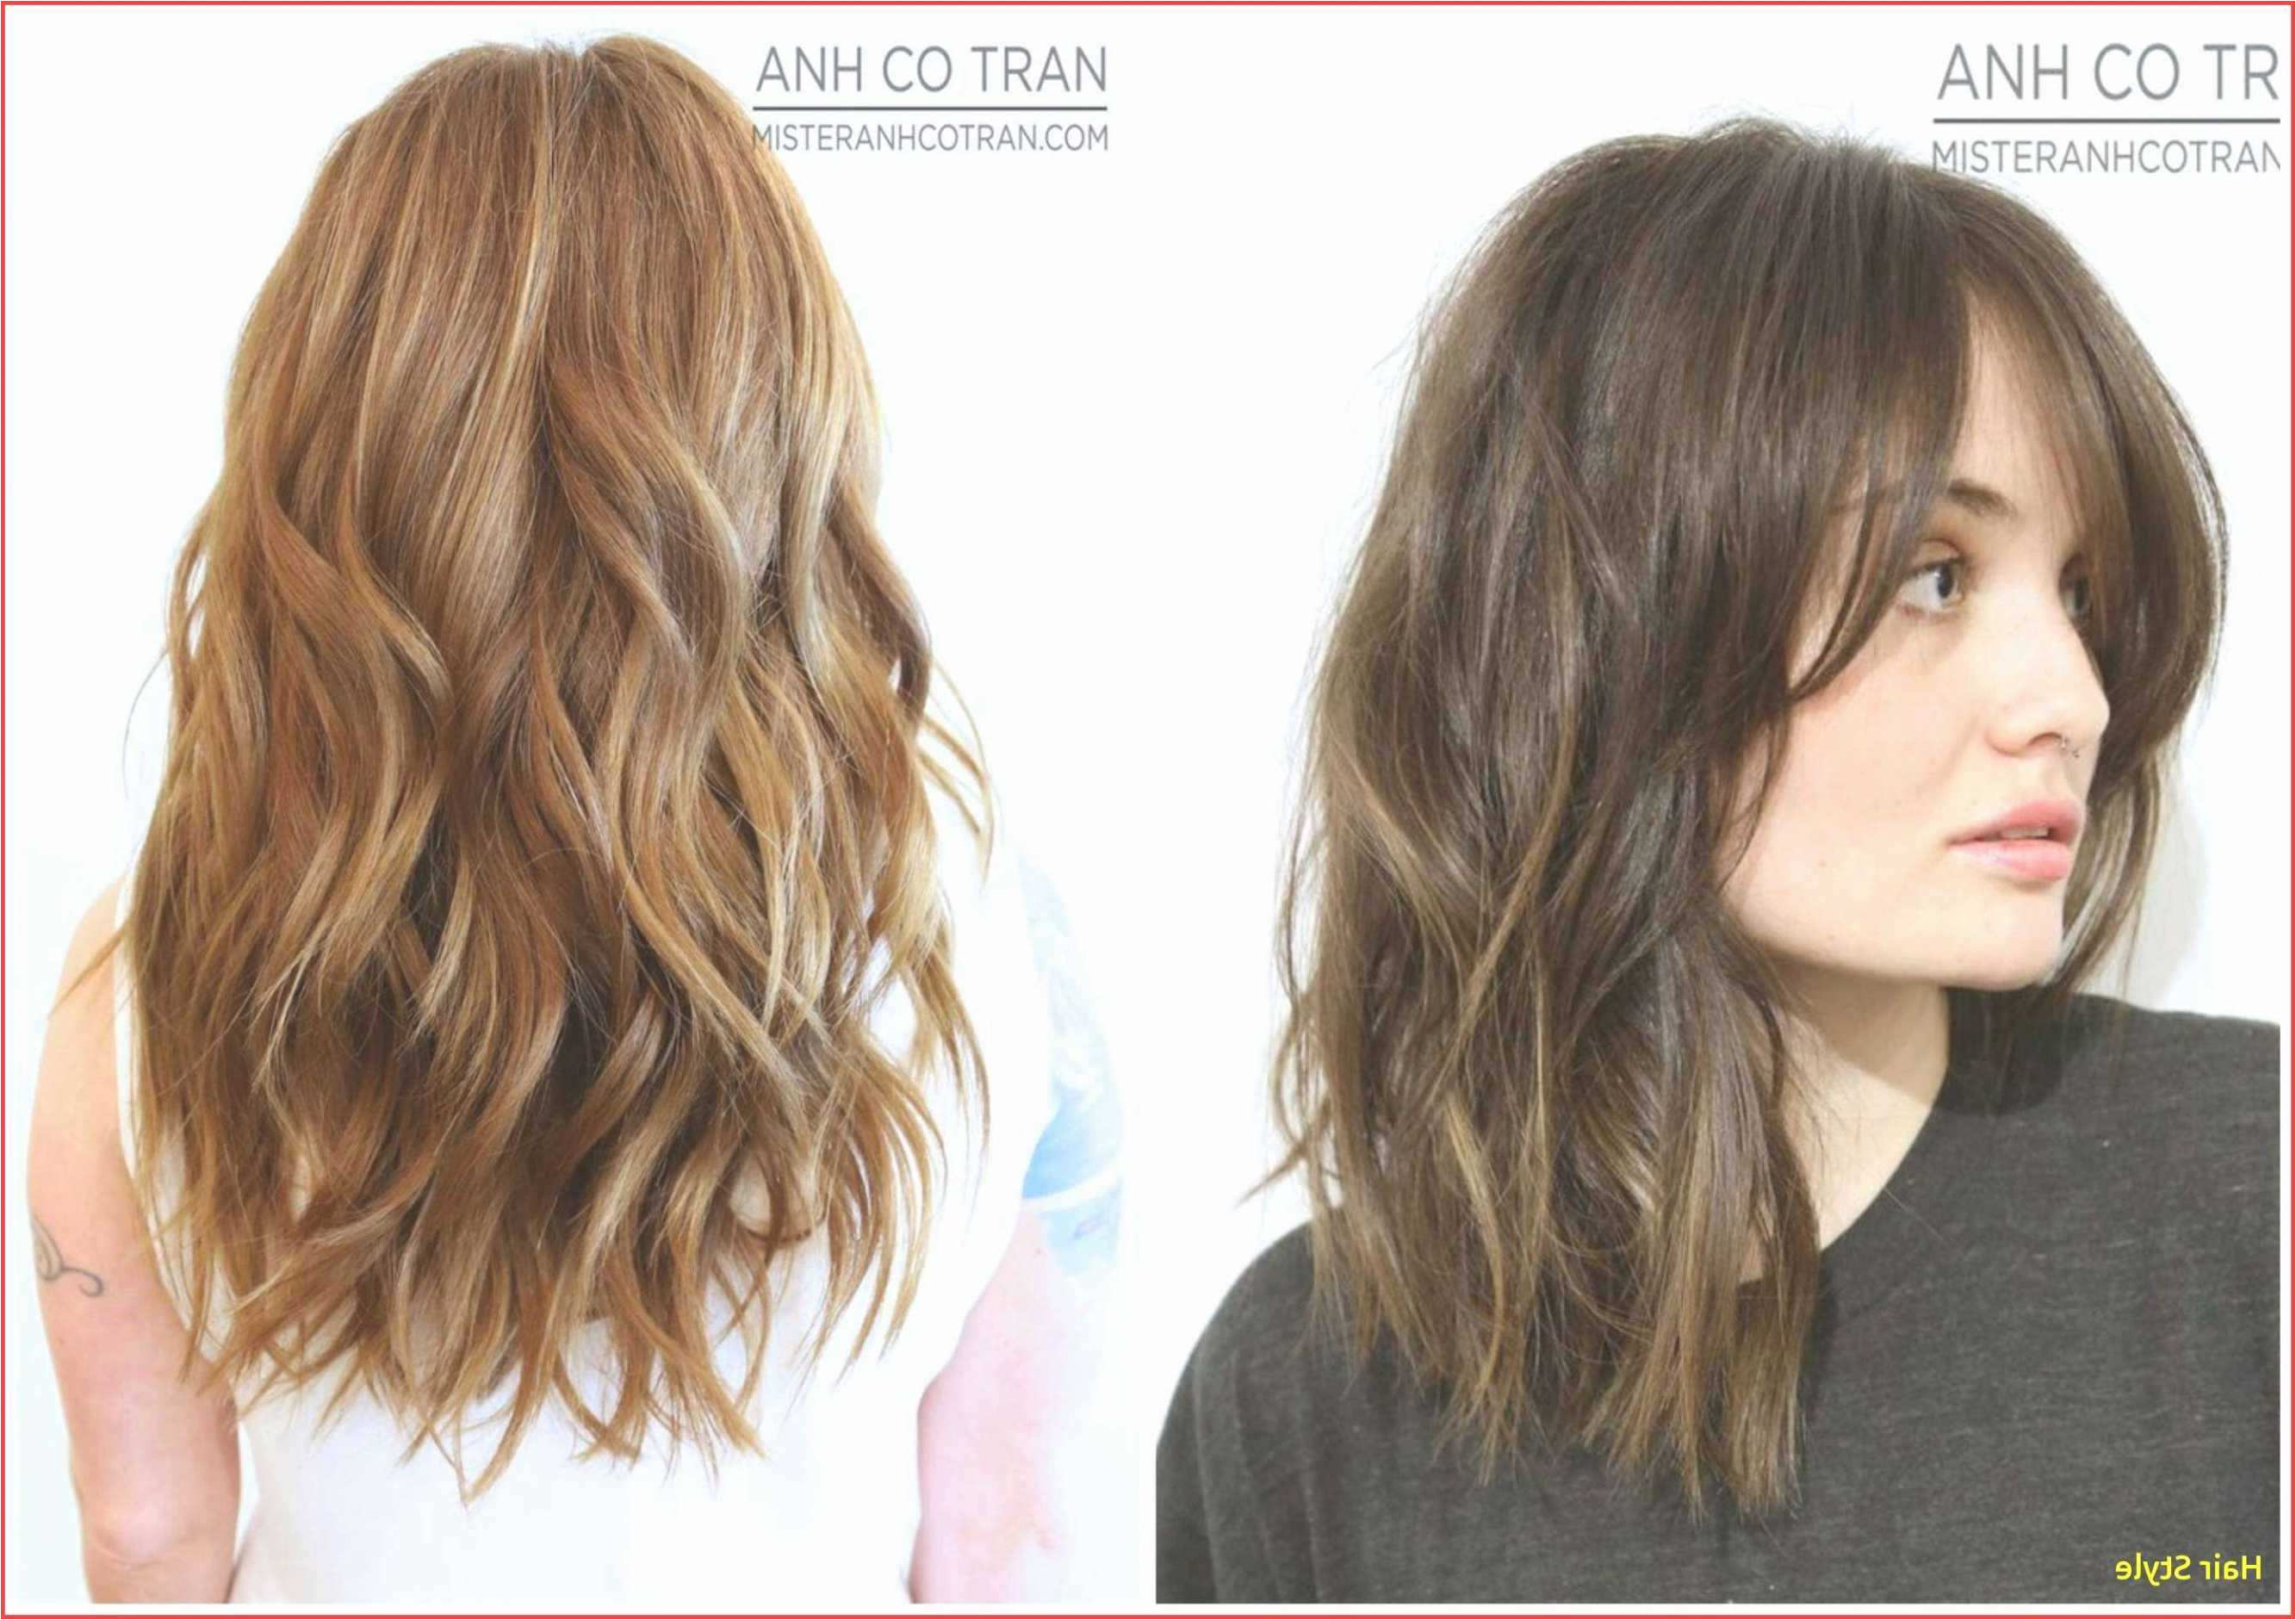 Hairstyles for Thick asian Hair Awesome New Short Wavy asian Hairstyles – Uternity Hairstyles for